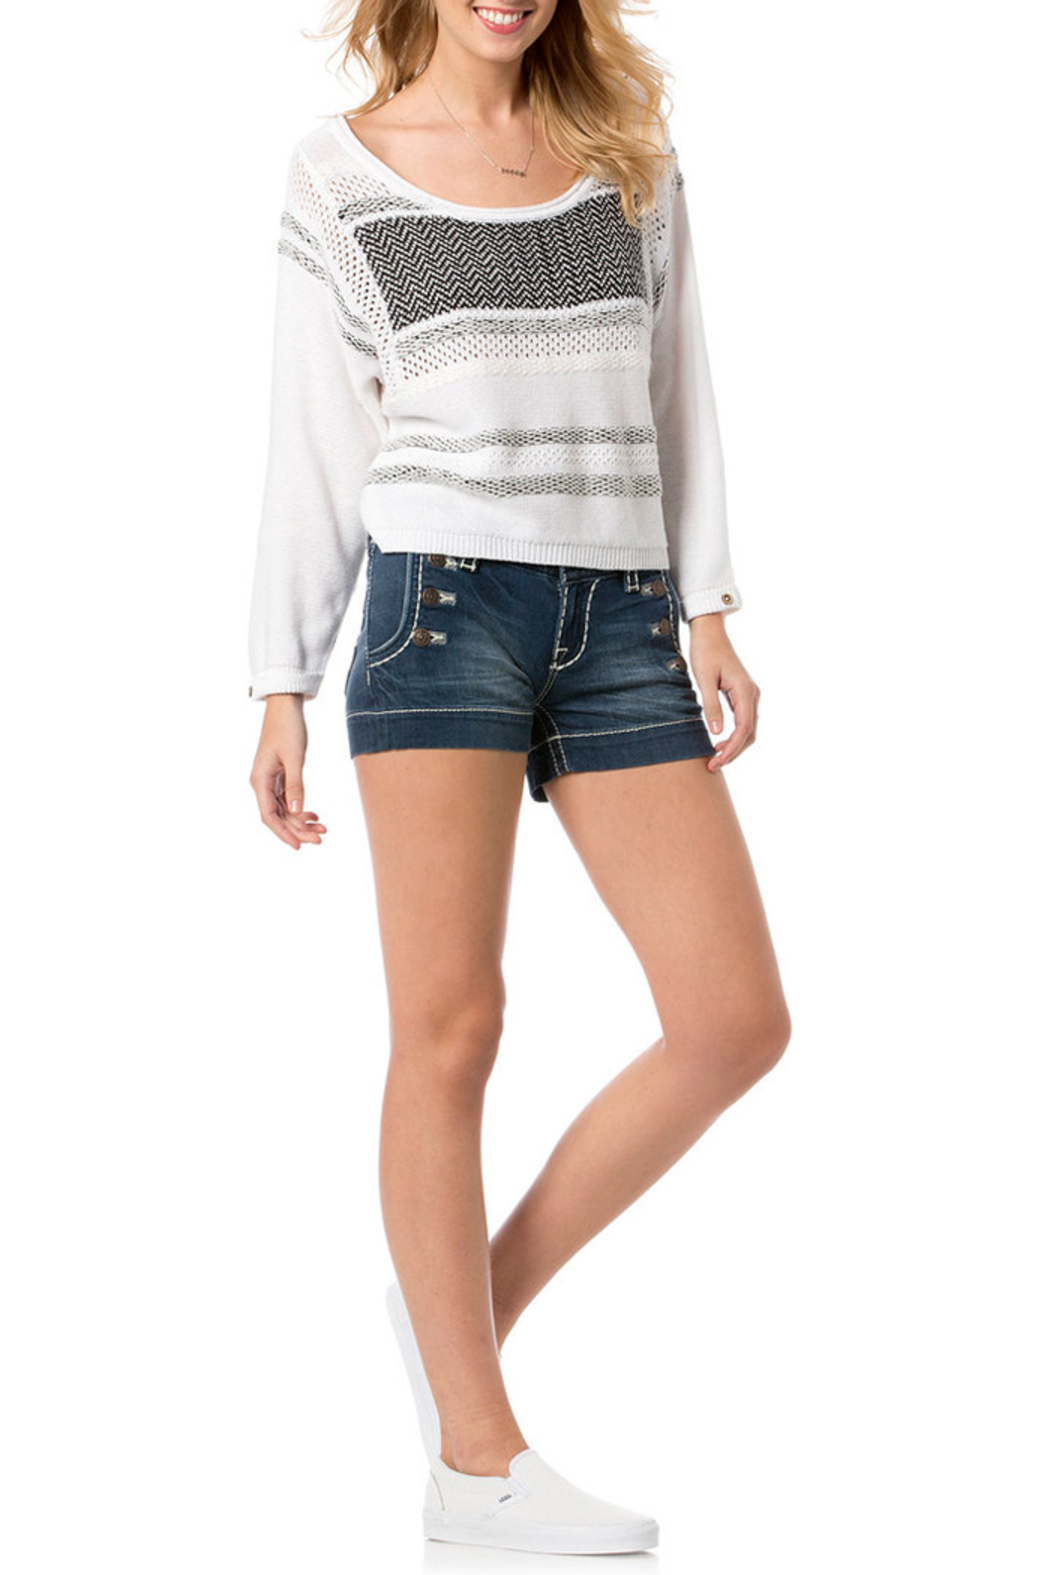 Miss Me White and Black Knit Sweater - Front Full Image